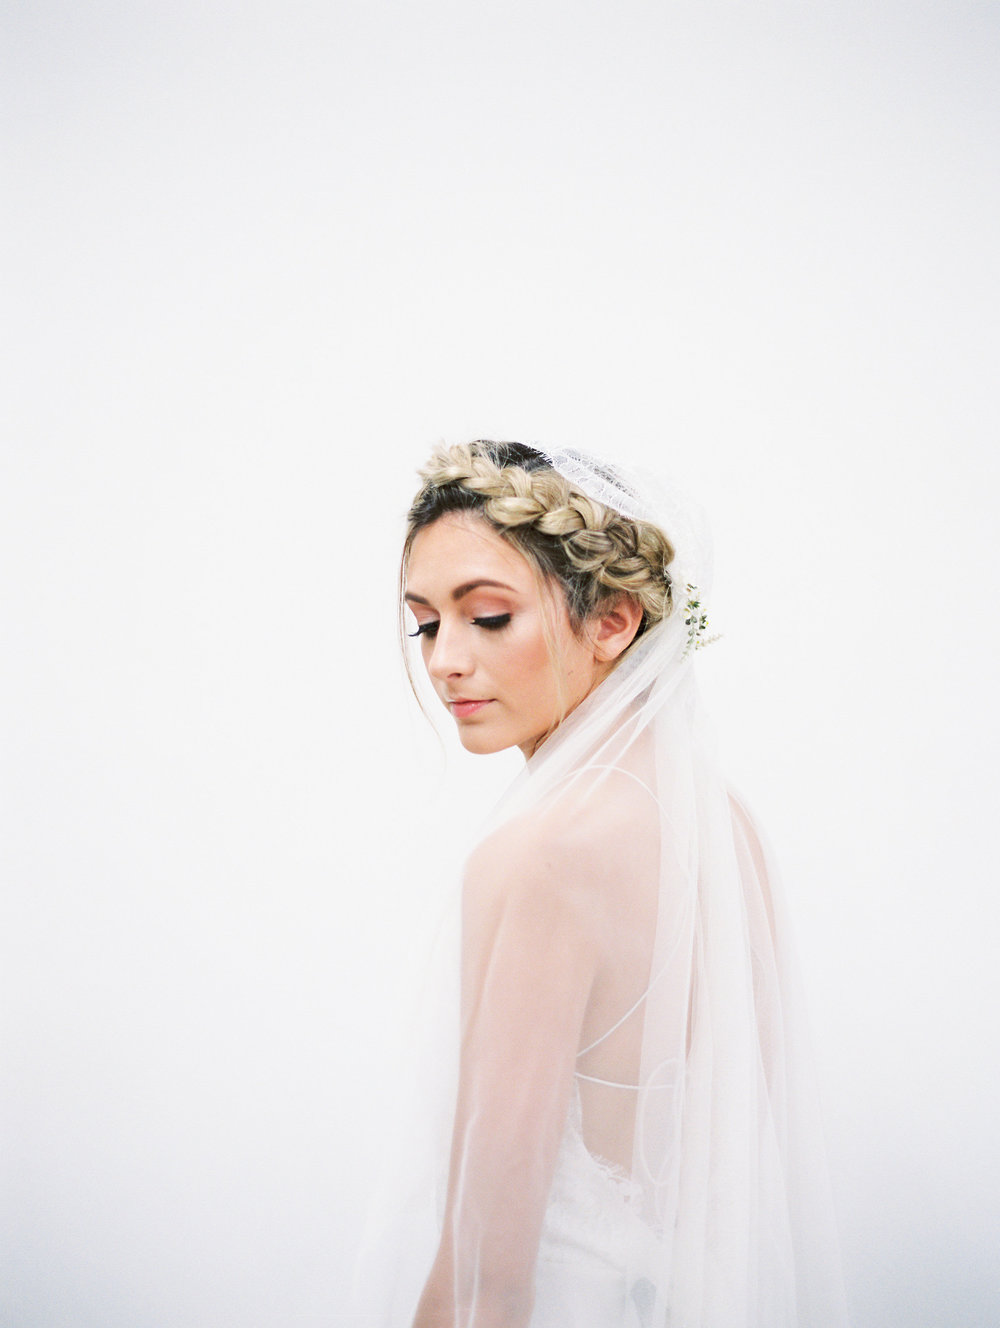 floral-cap-veil-bridal-braided-hairstyle-updo